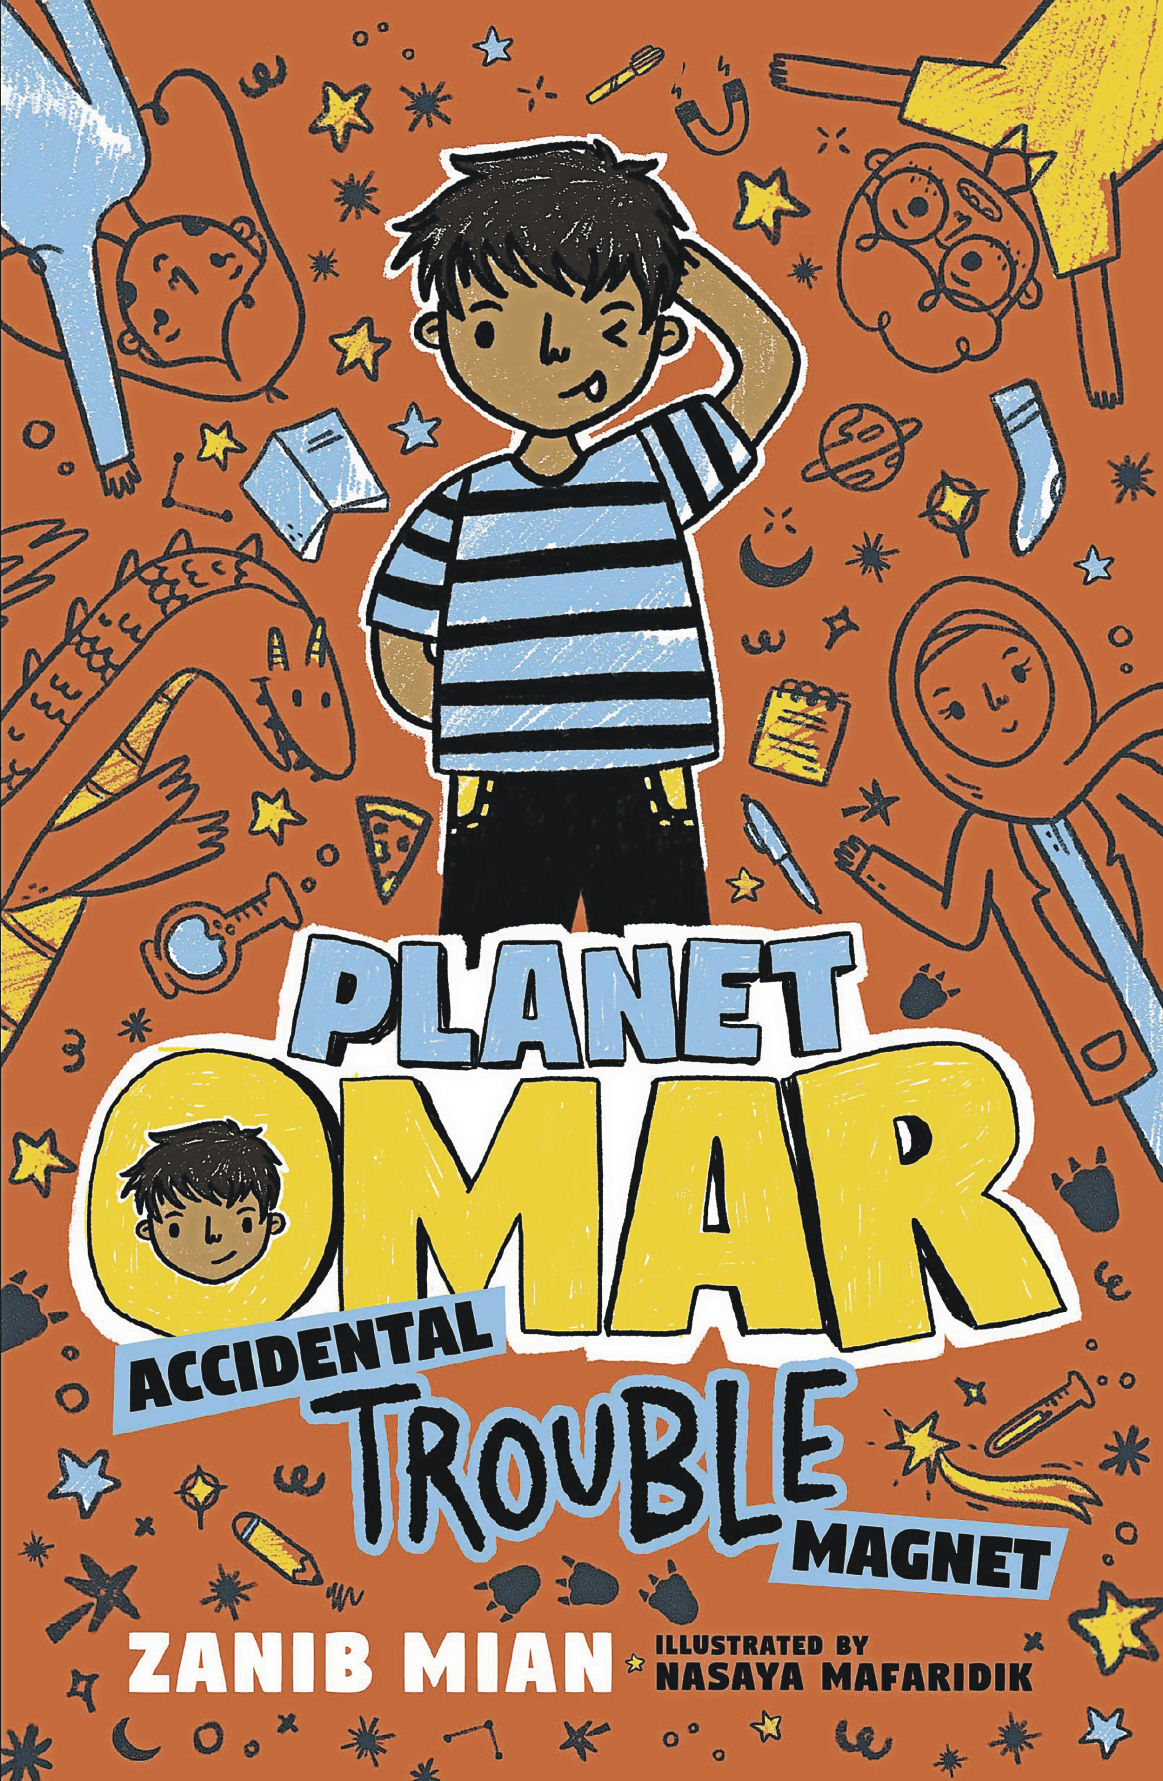 'Planet Omar: Accidental Trouble Magnet'